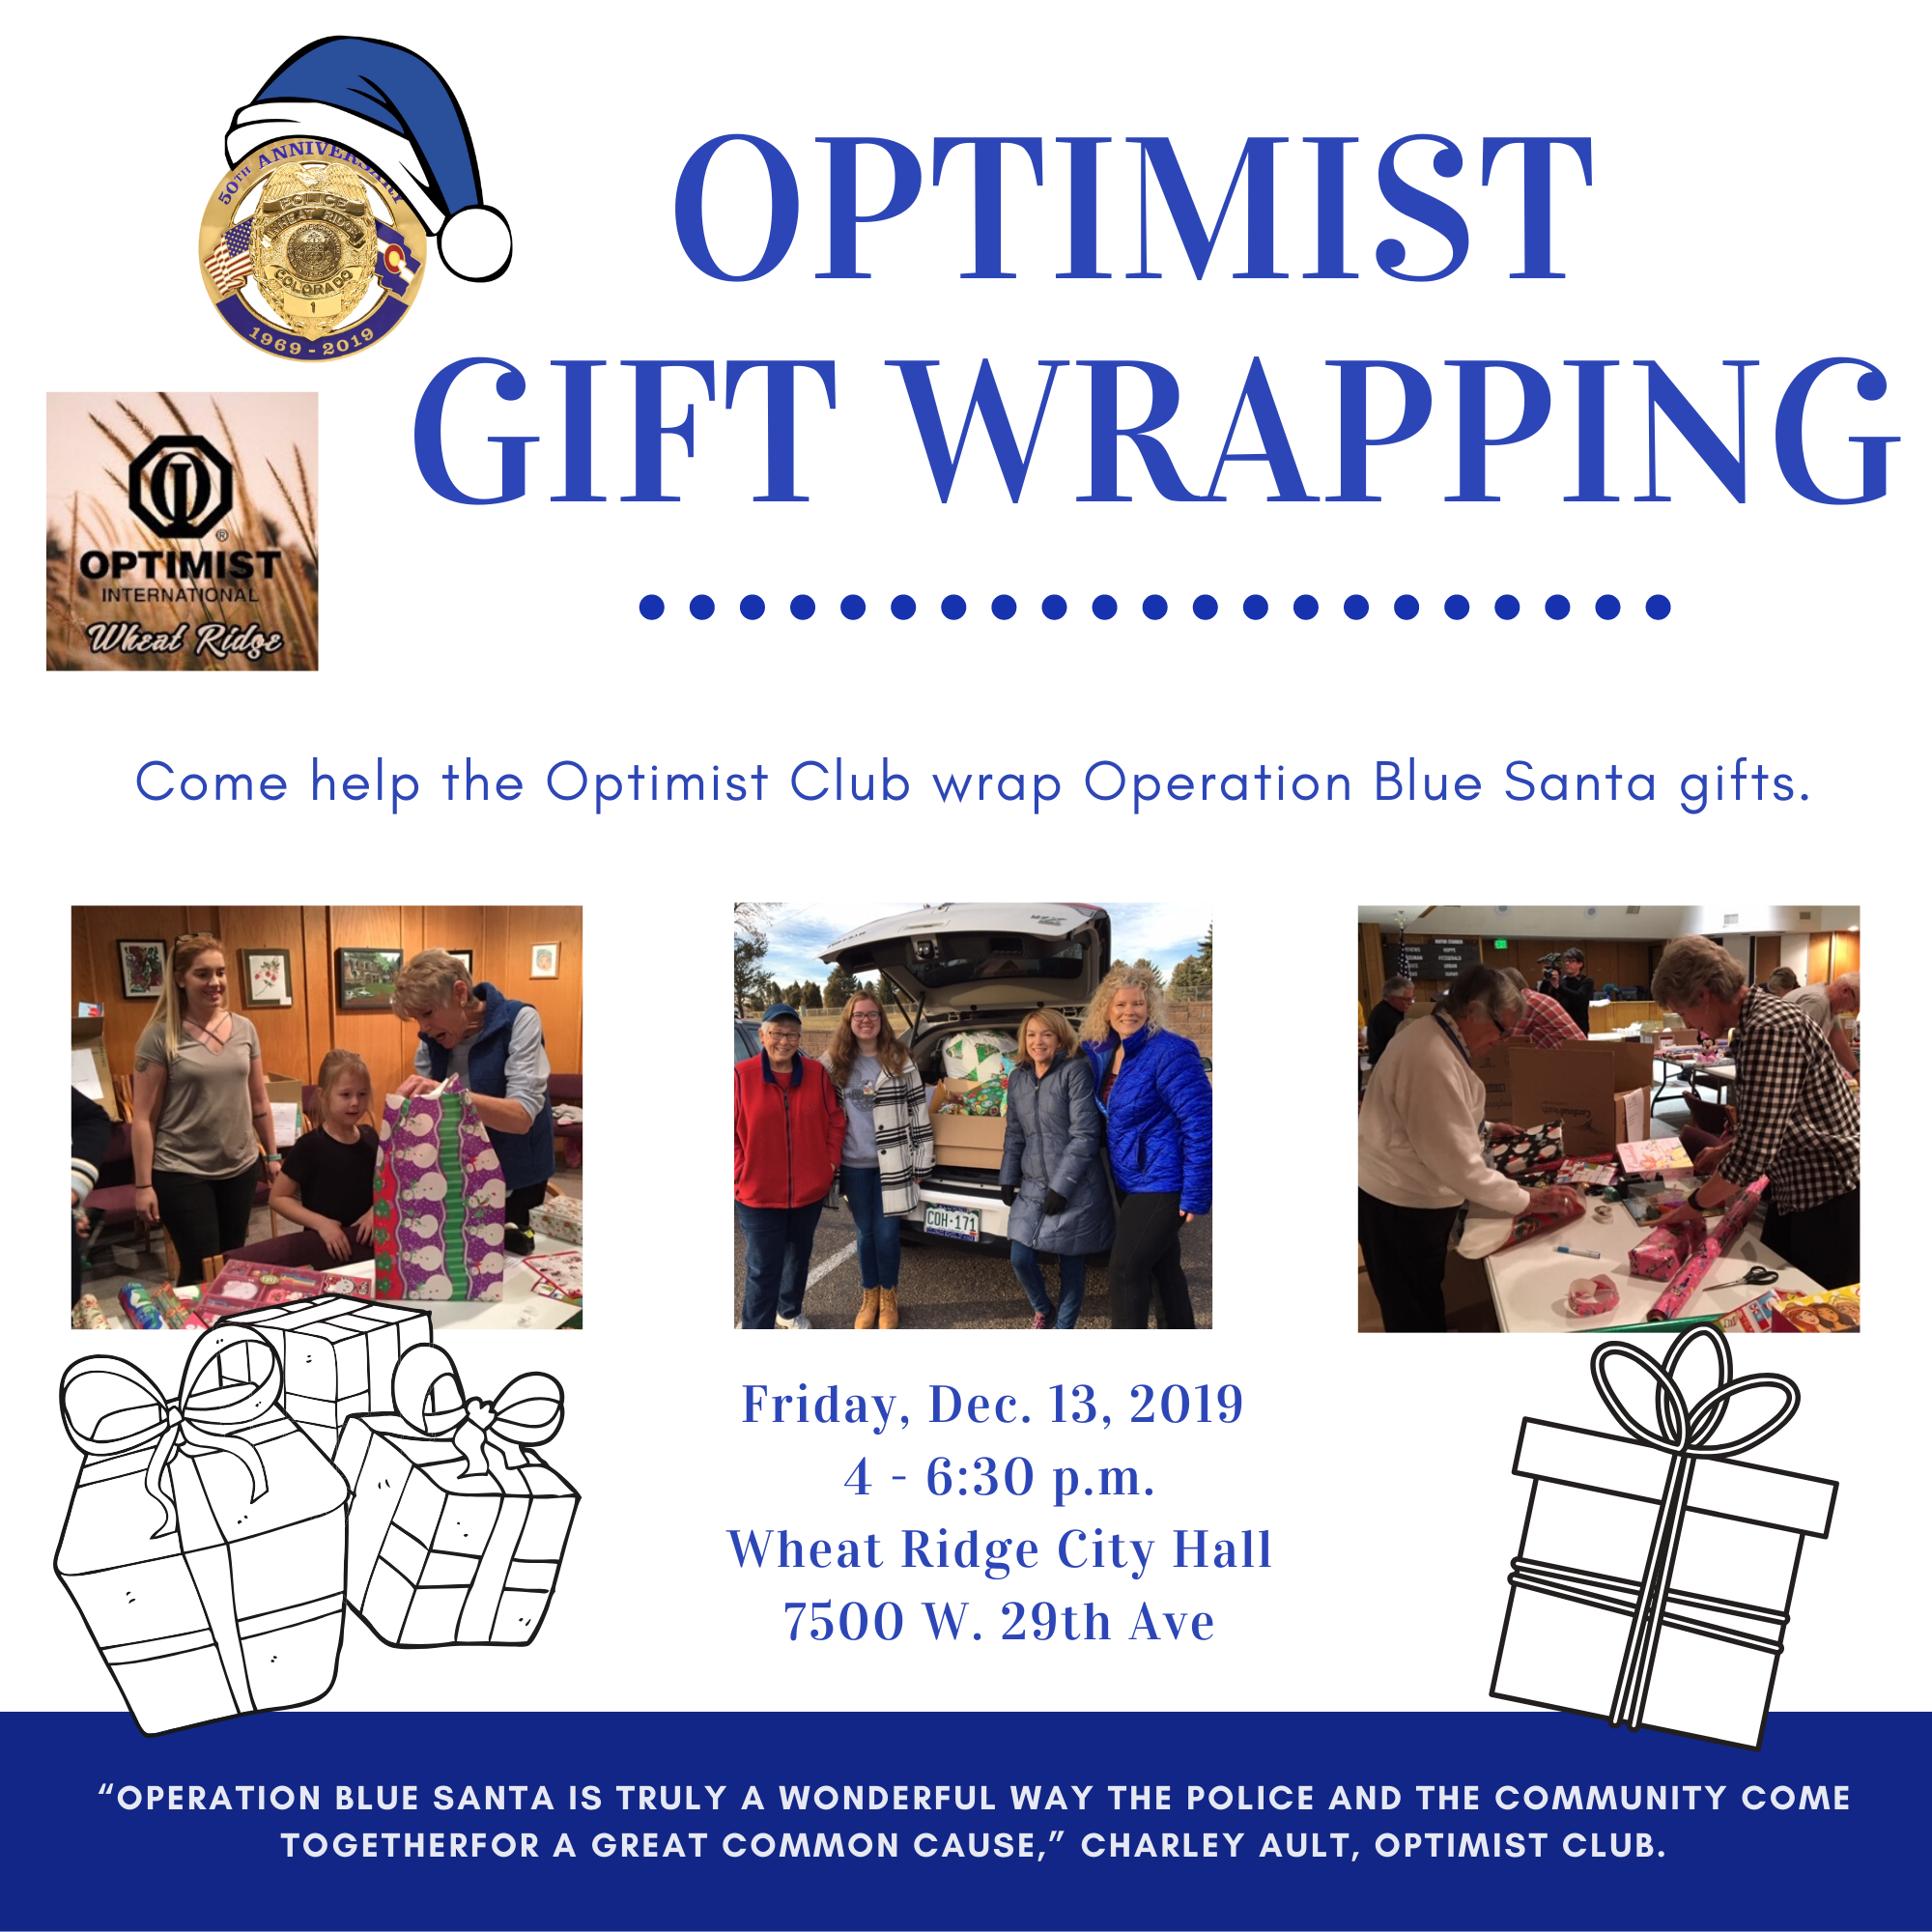 optimist gift wrapping